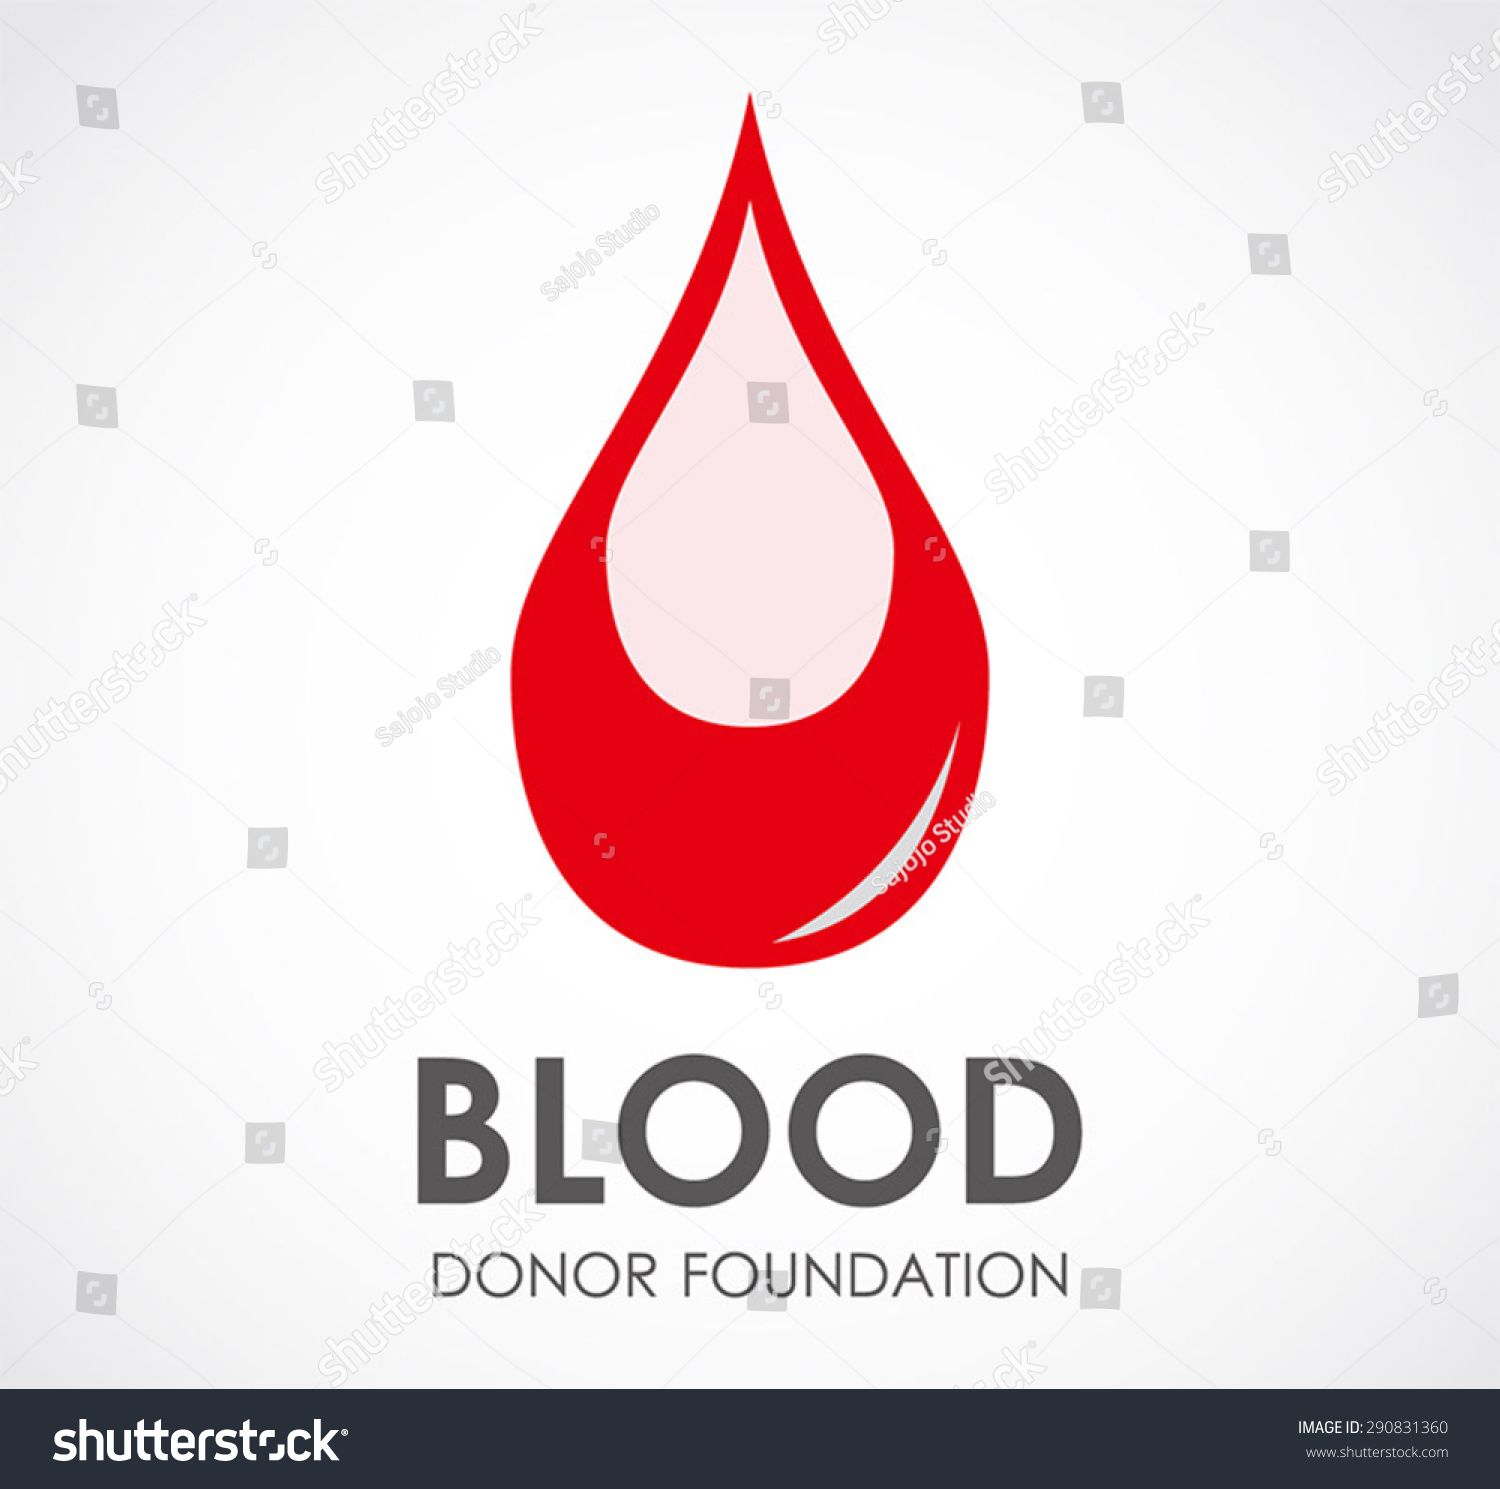 Blood donor foundation logo element care stock vector 290831360 blood donor foundation logo element care symbol design vector shape icon abstract illustration business company buycottarizona